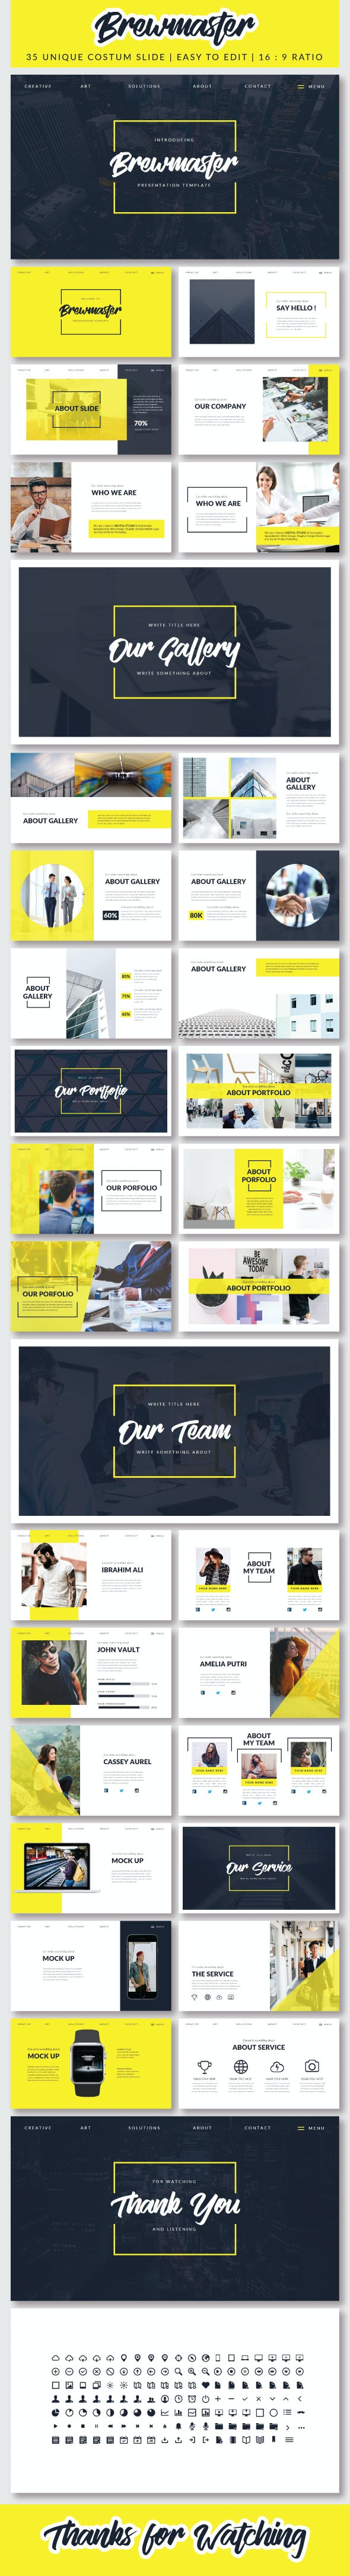 Brewmaster - PowerPoint - Creative PowerPoint Templates